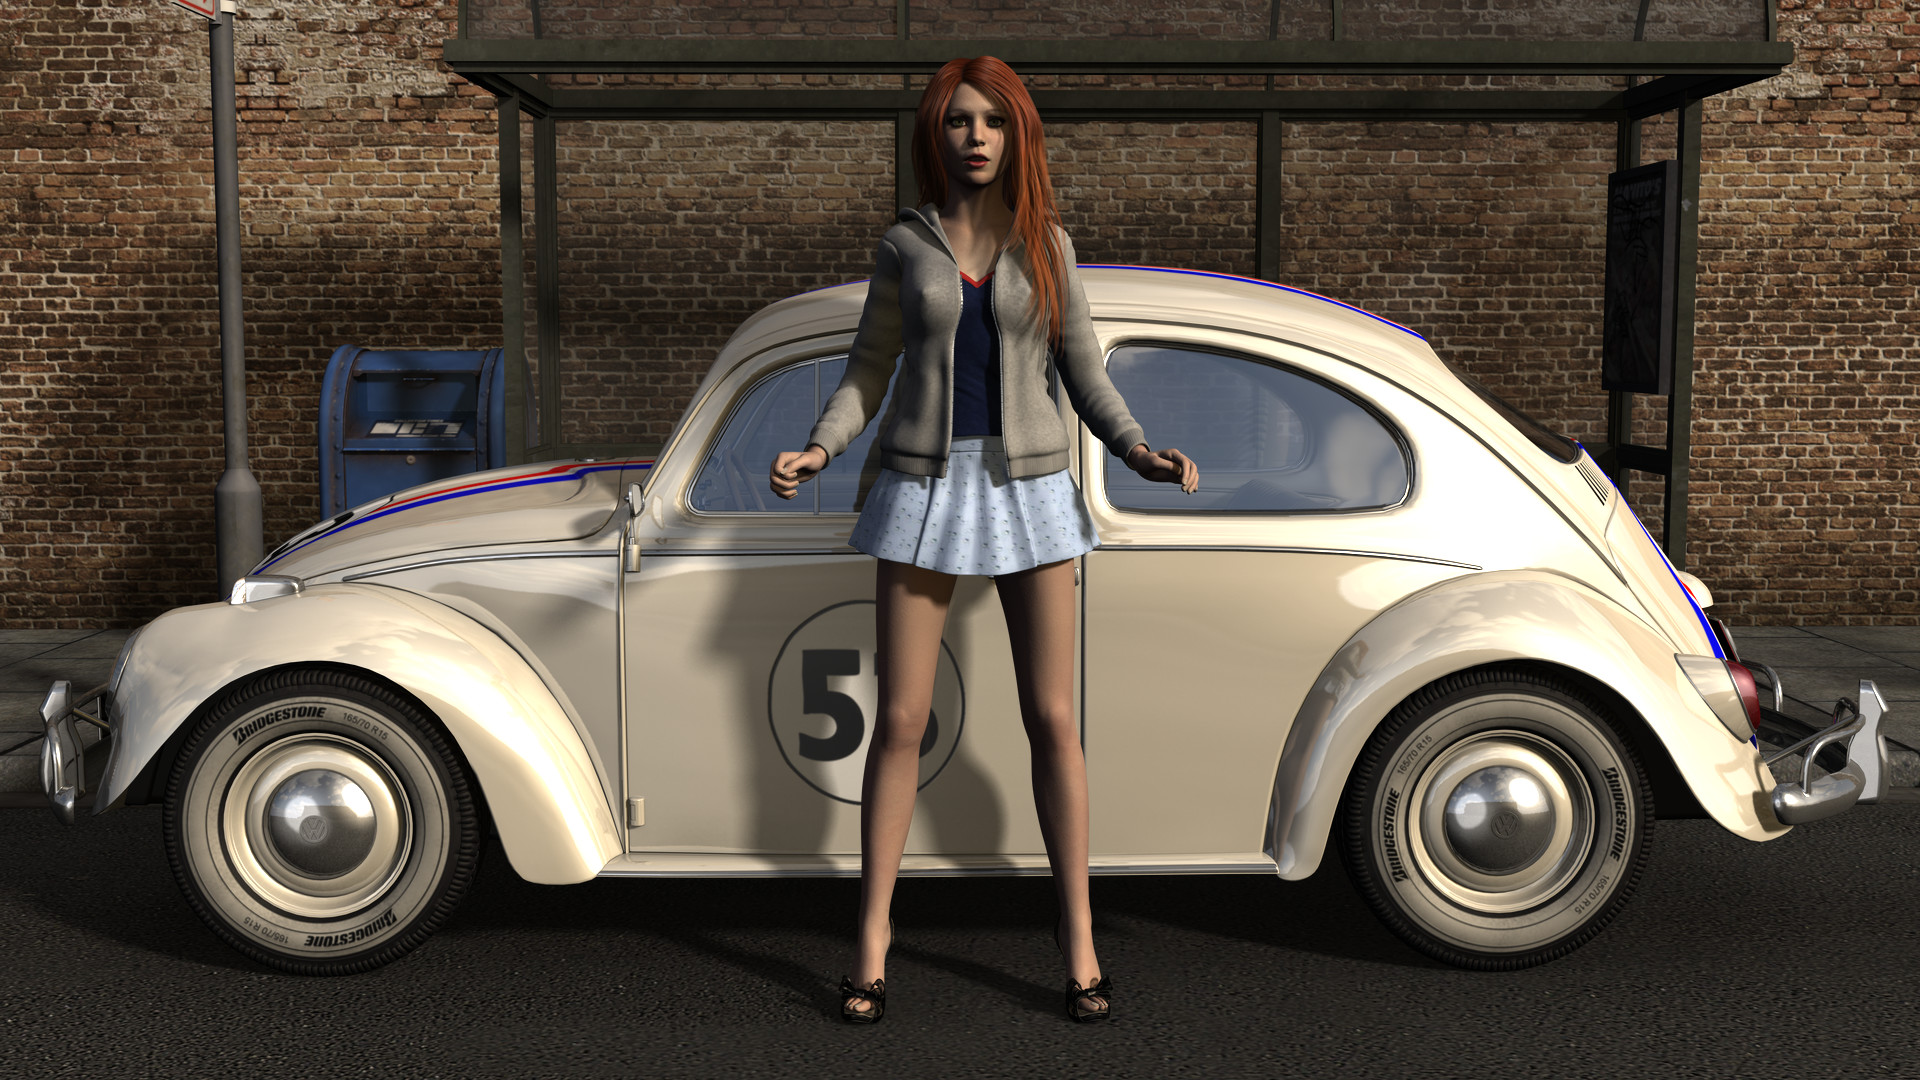 Res: 1920x1080, Maggie and Herbie by timnaas Maggie and Herbie by timnaas